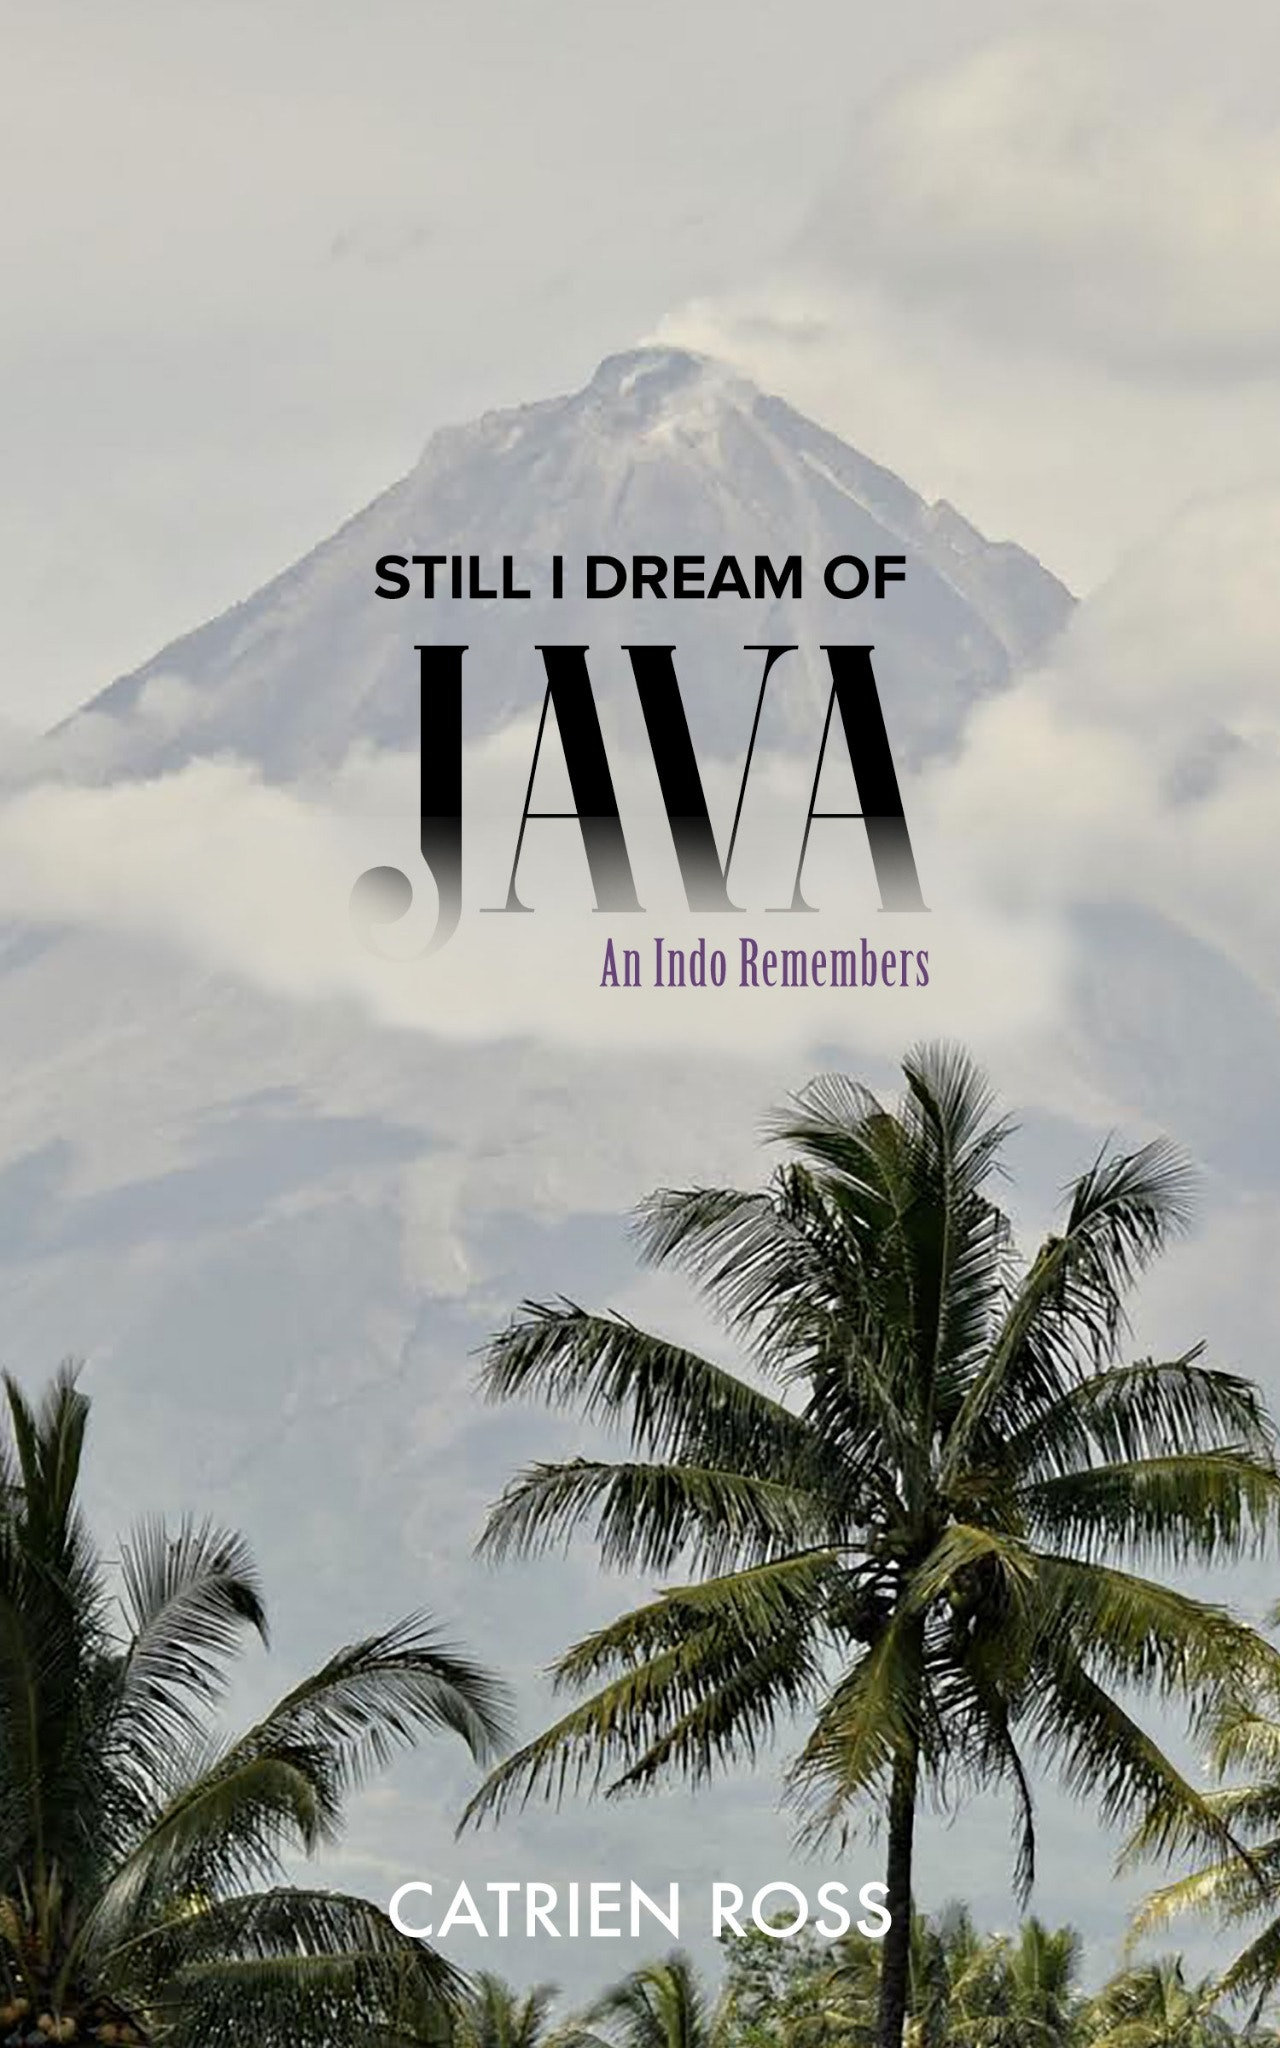 STILL I DREAM OF JAVA